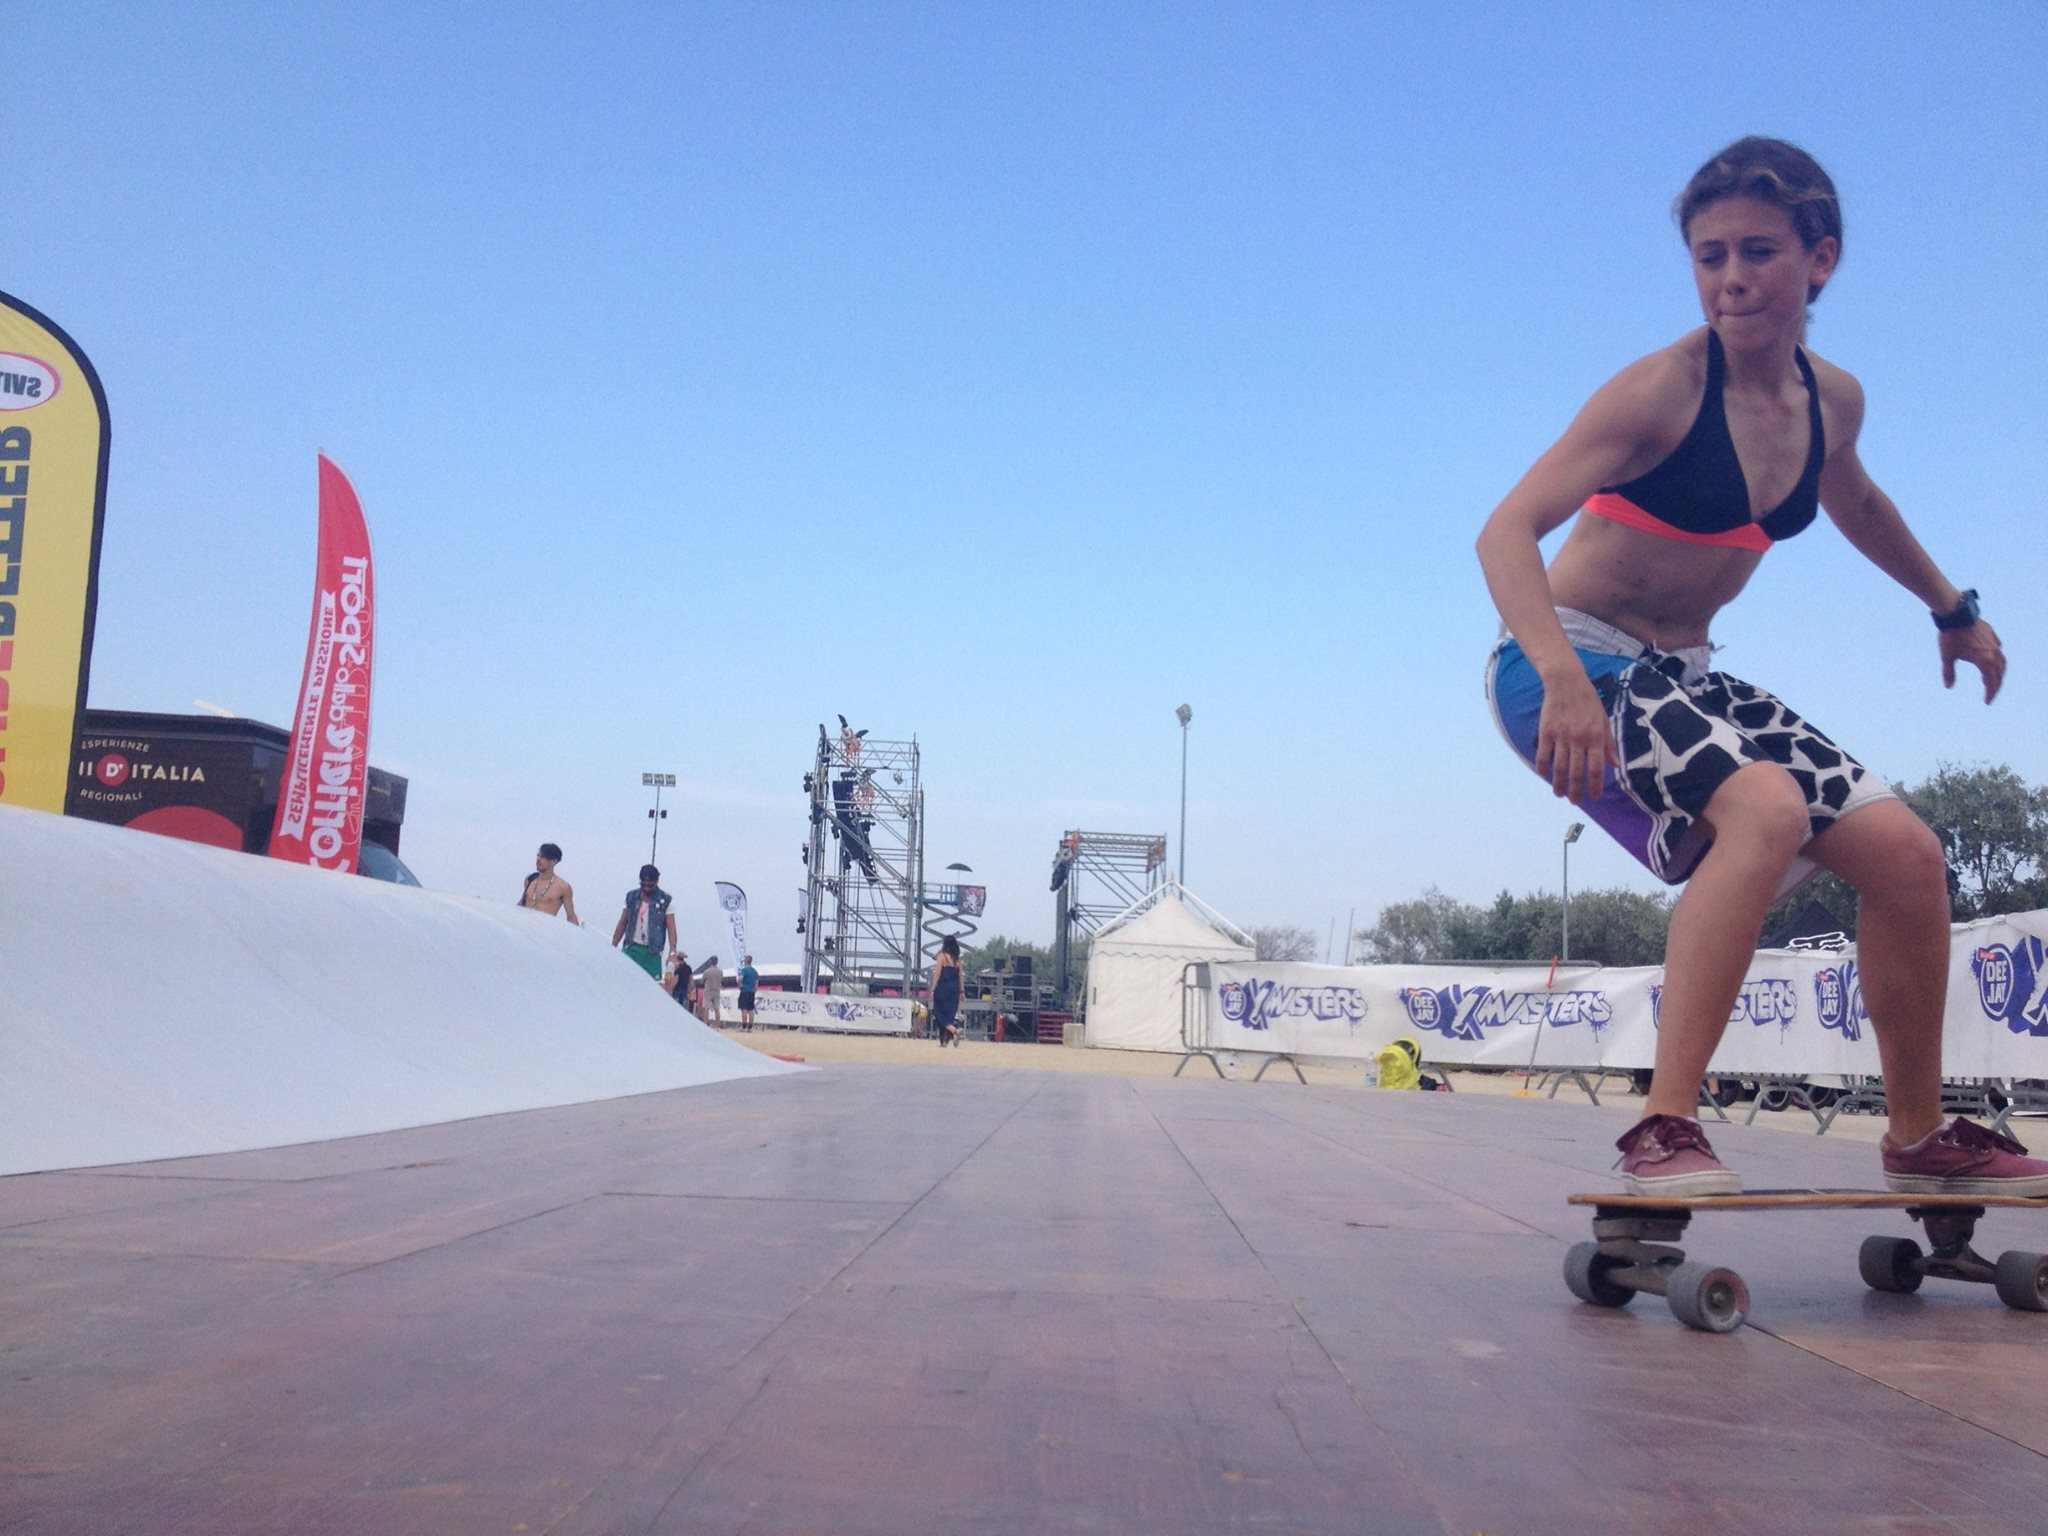 Whitezu Sufskate Wave Backyard - Pescara